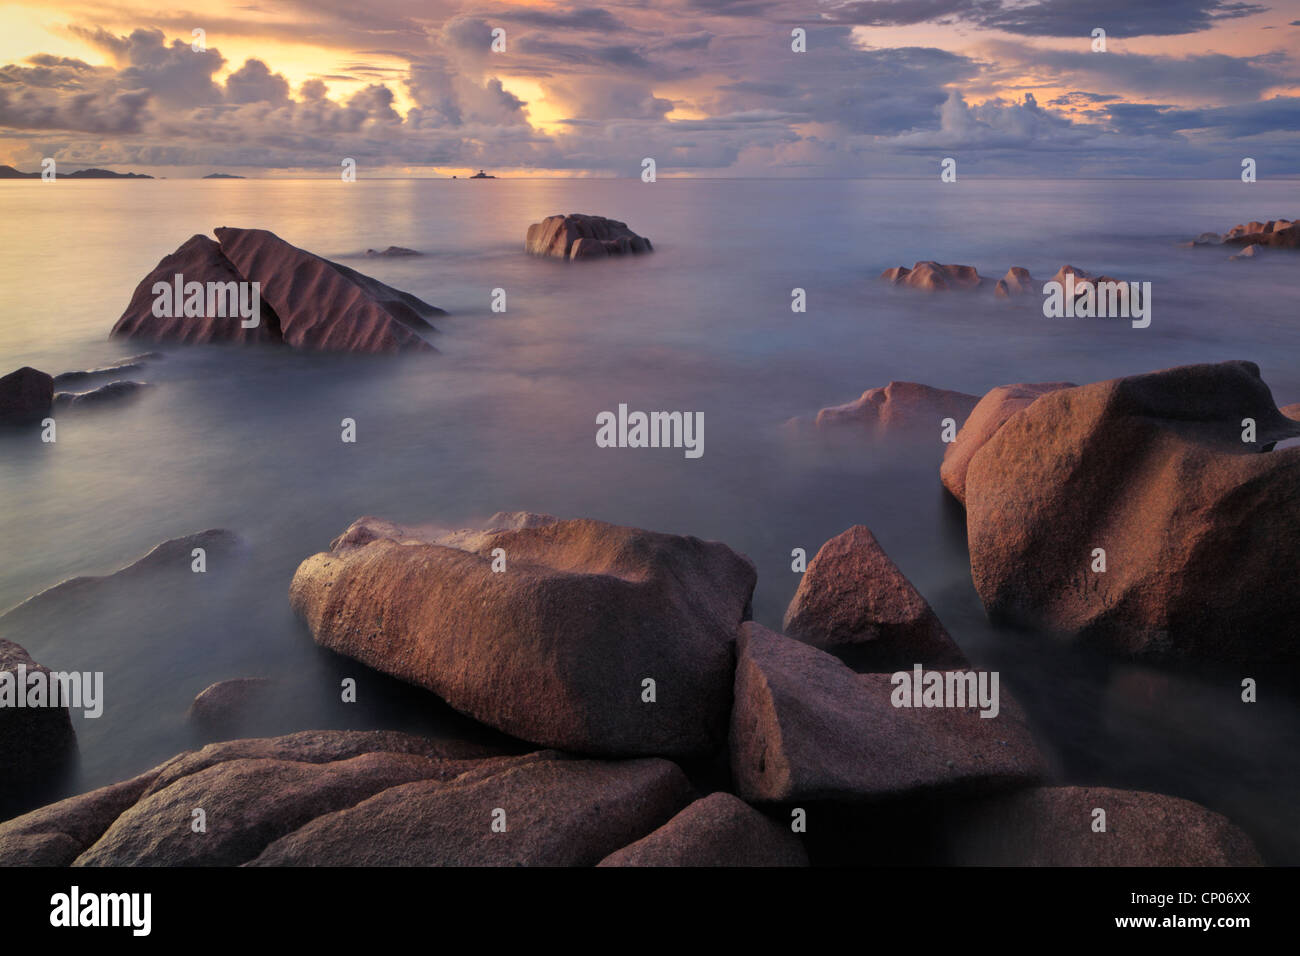 Storm clouds over the Baie Ste Anne at sunset as seen from the north end of La Digue in the Seychelles - Stock Image